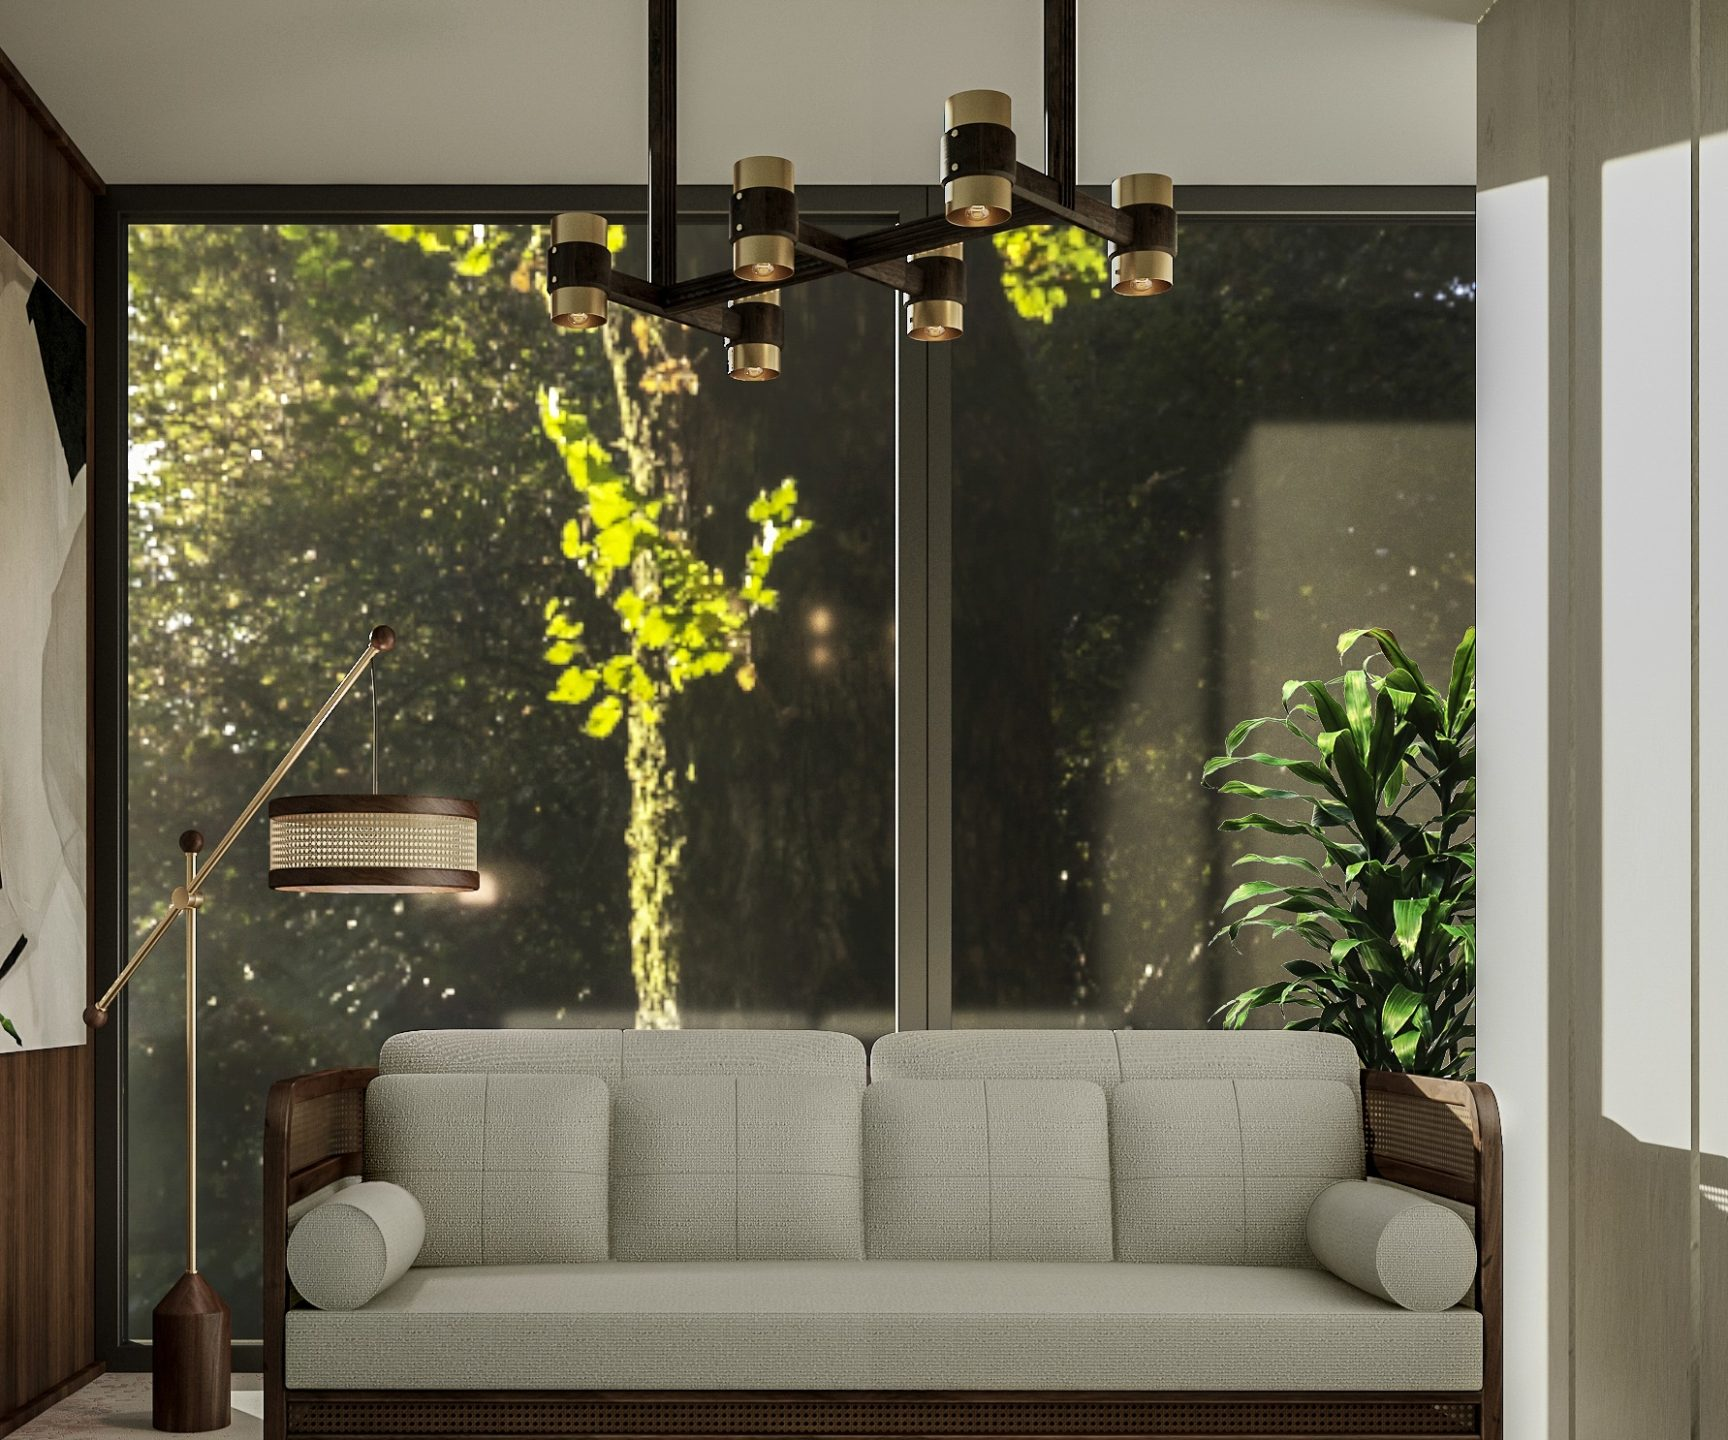 Whittle Suspension Lamp with Crockford Sofa